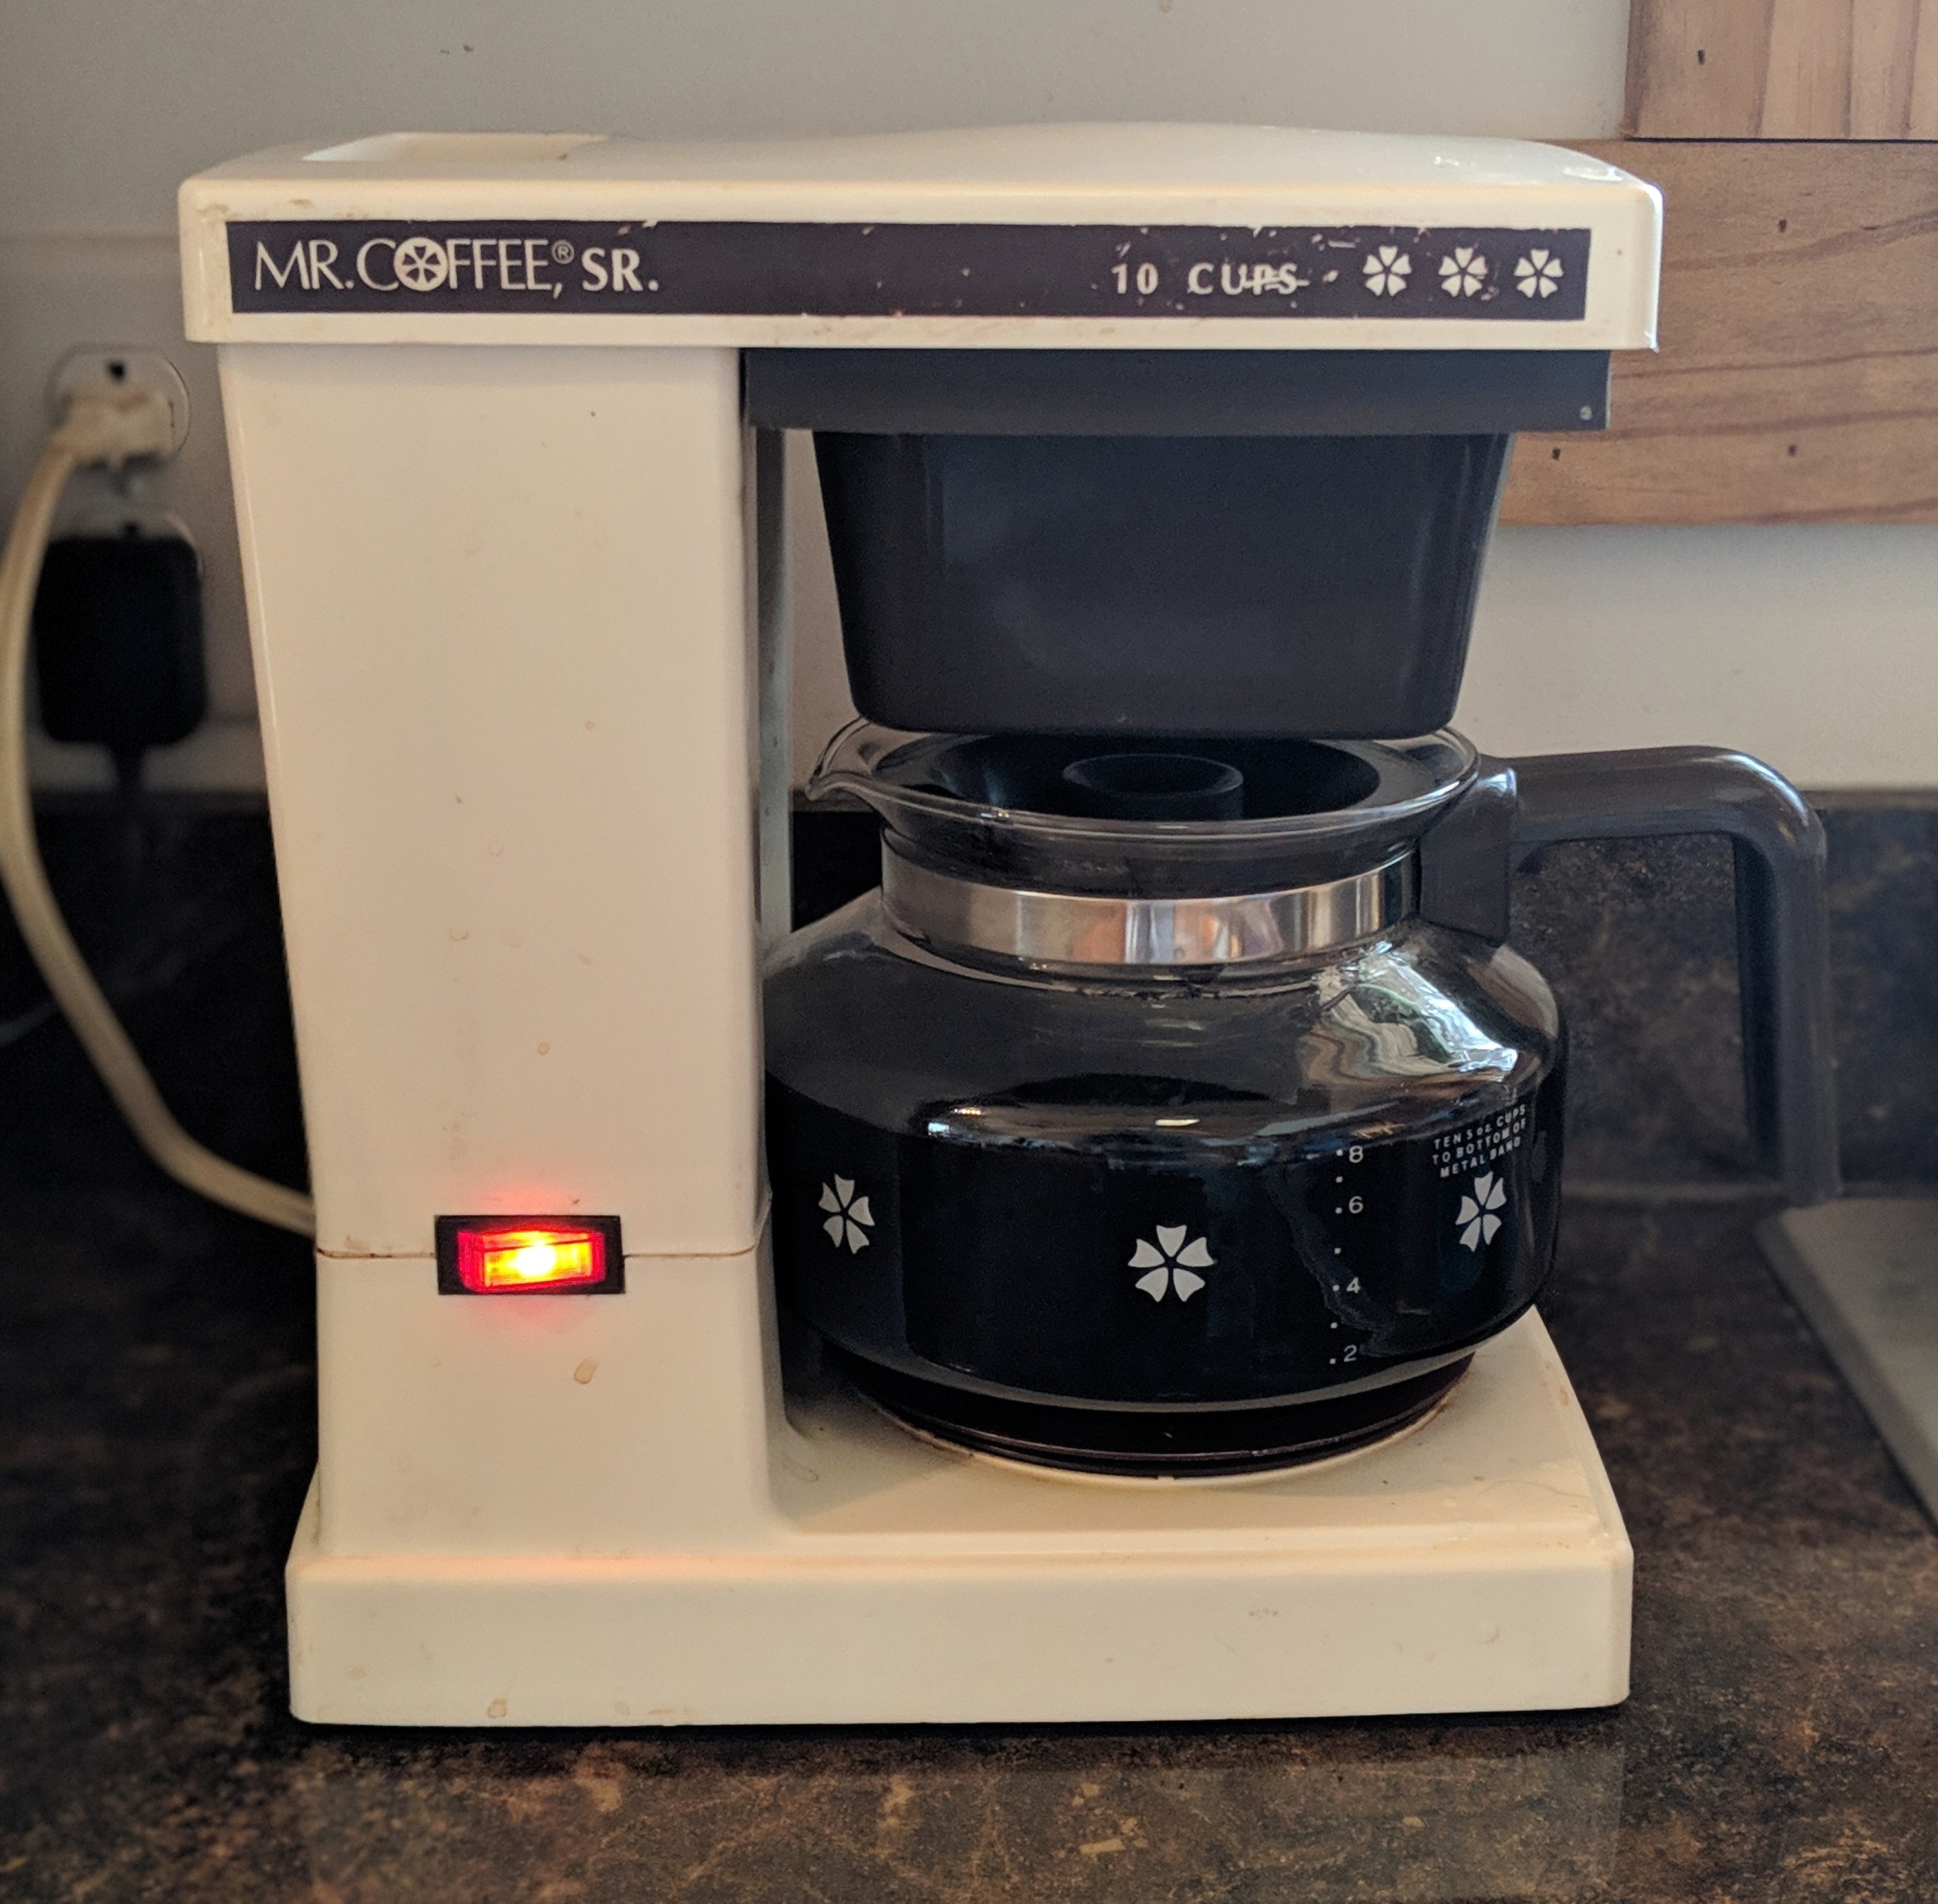 A white Mr Coffee maker with just one button